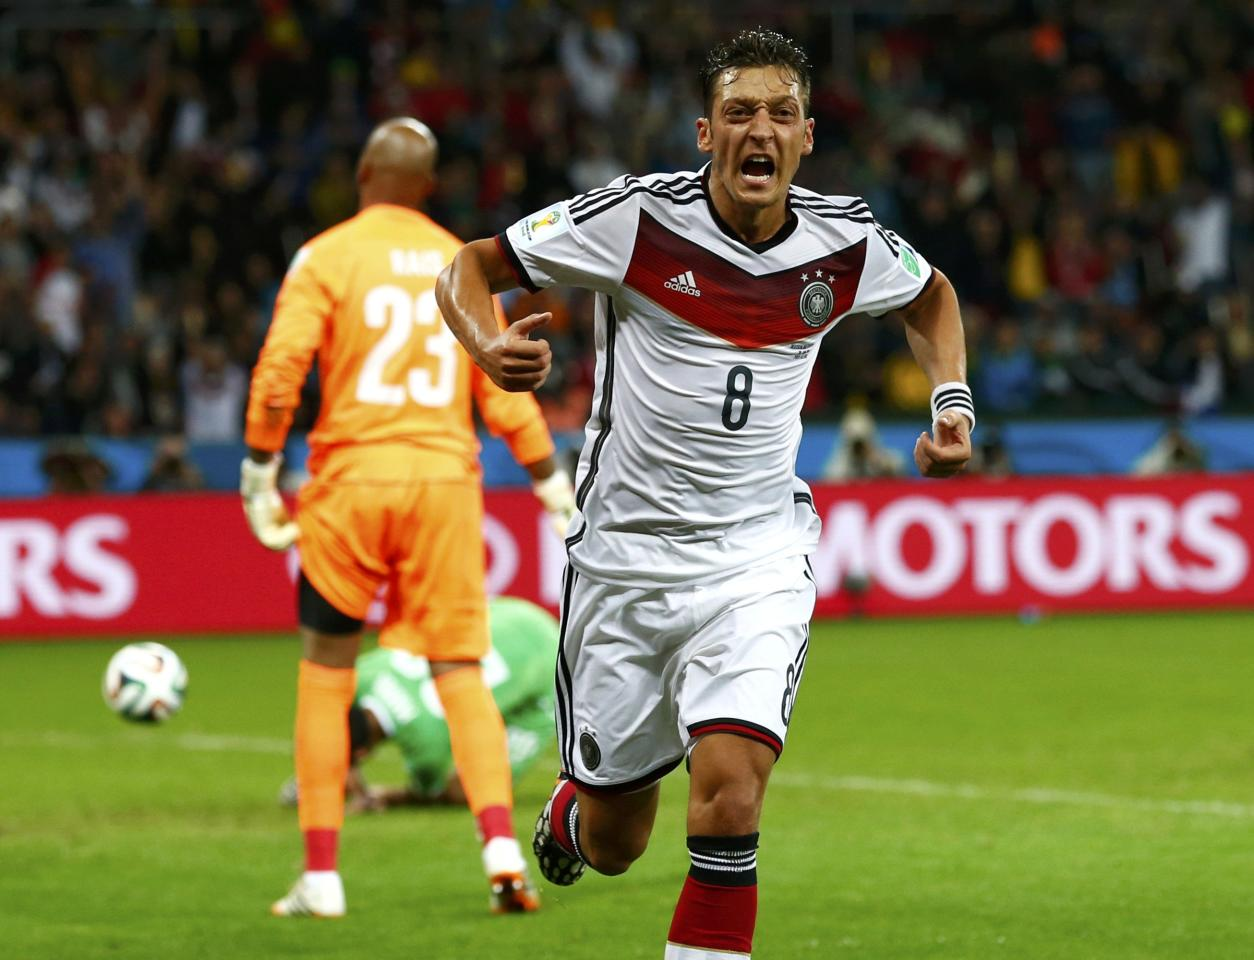 Germany's Mesut Ozil celebrates after scoring his team's second goal against Algeria during extra time in their 2014 World Cup round of 16 game at the Beira Rio stadium in Porto Alegre June 30, 2014. REUTERS/Darren Staples (BRAZIL - Tags: SOCCER SPORT WORLD CUP)